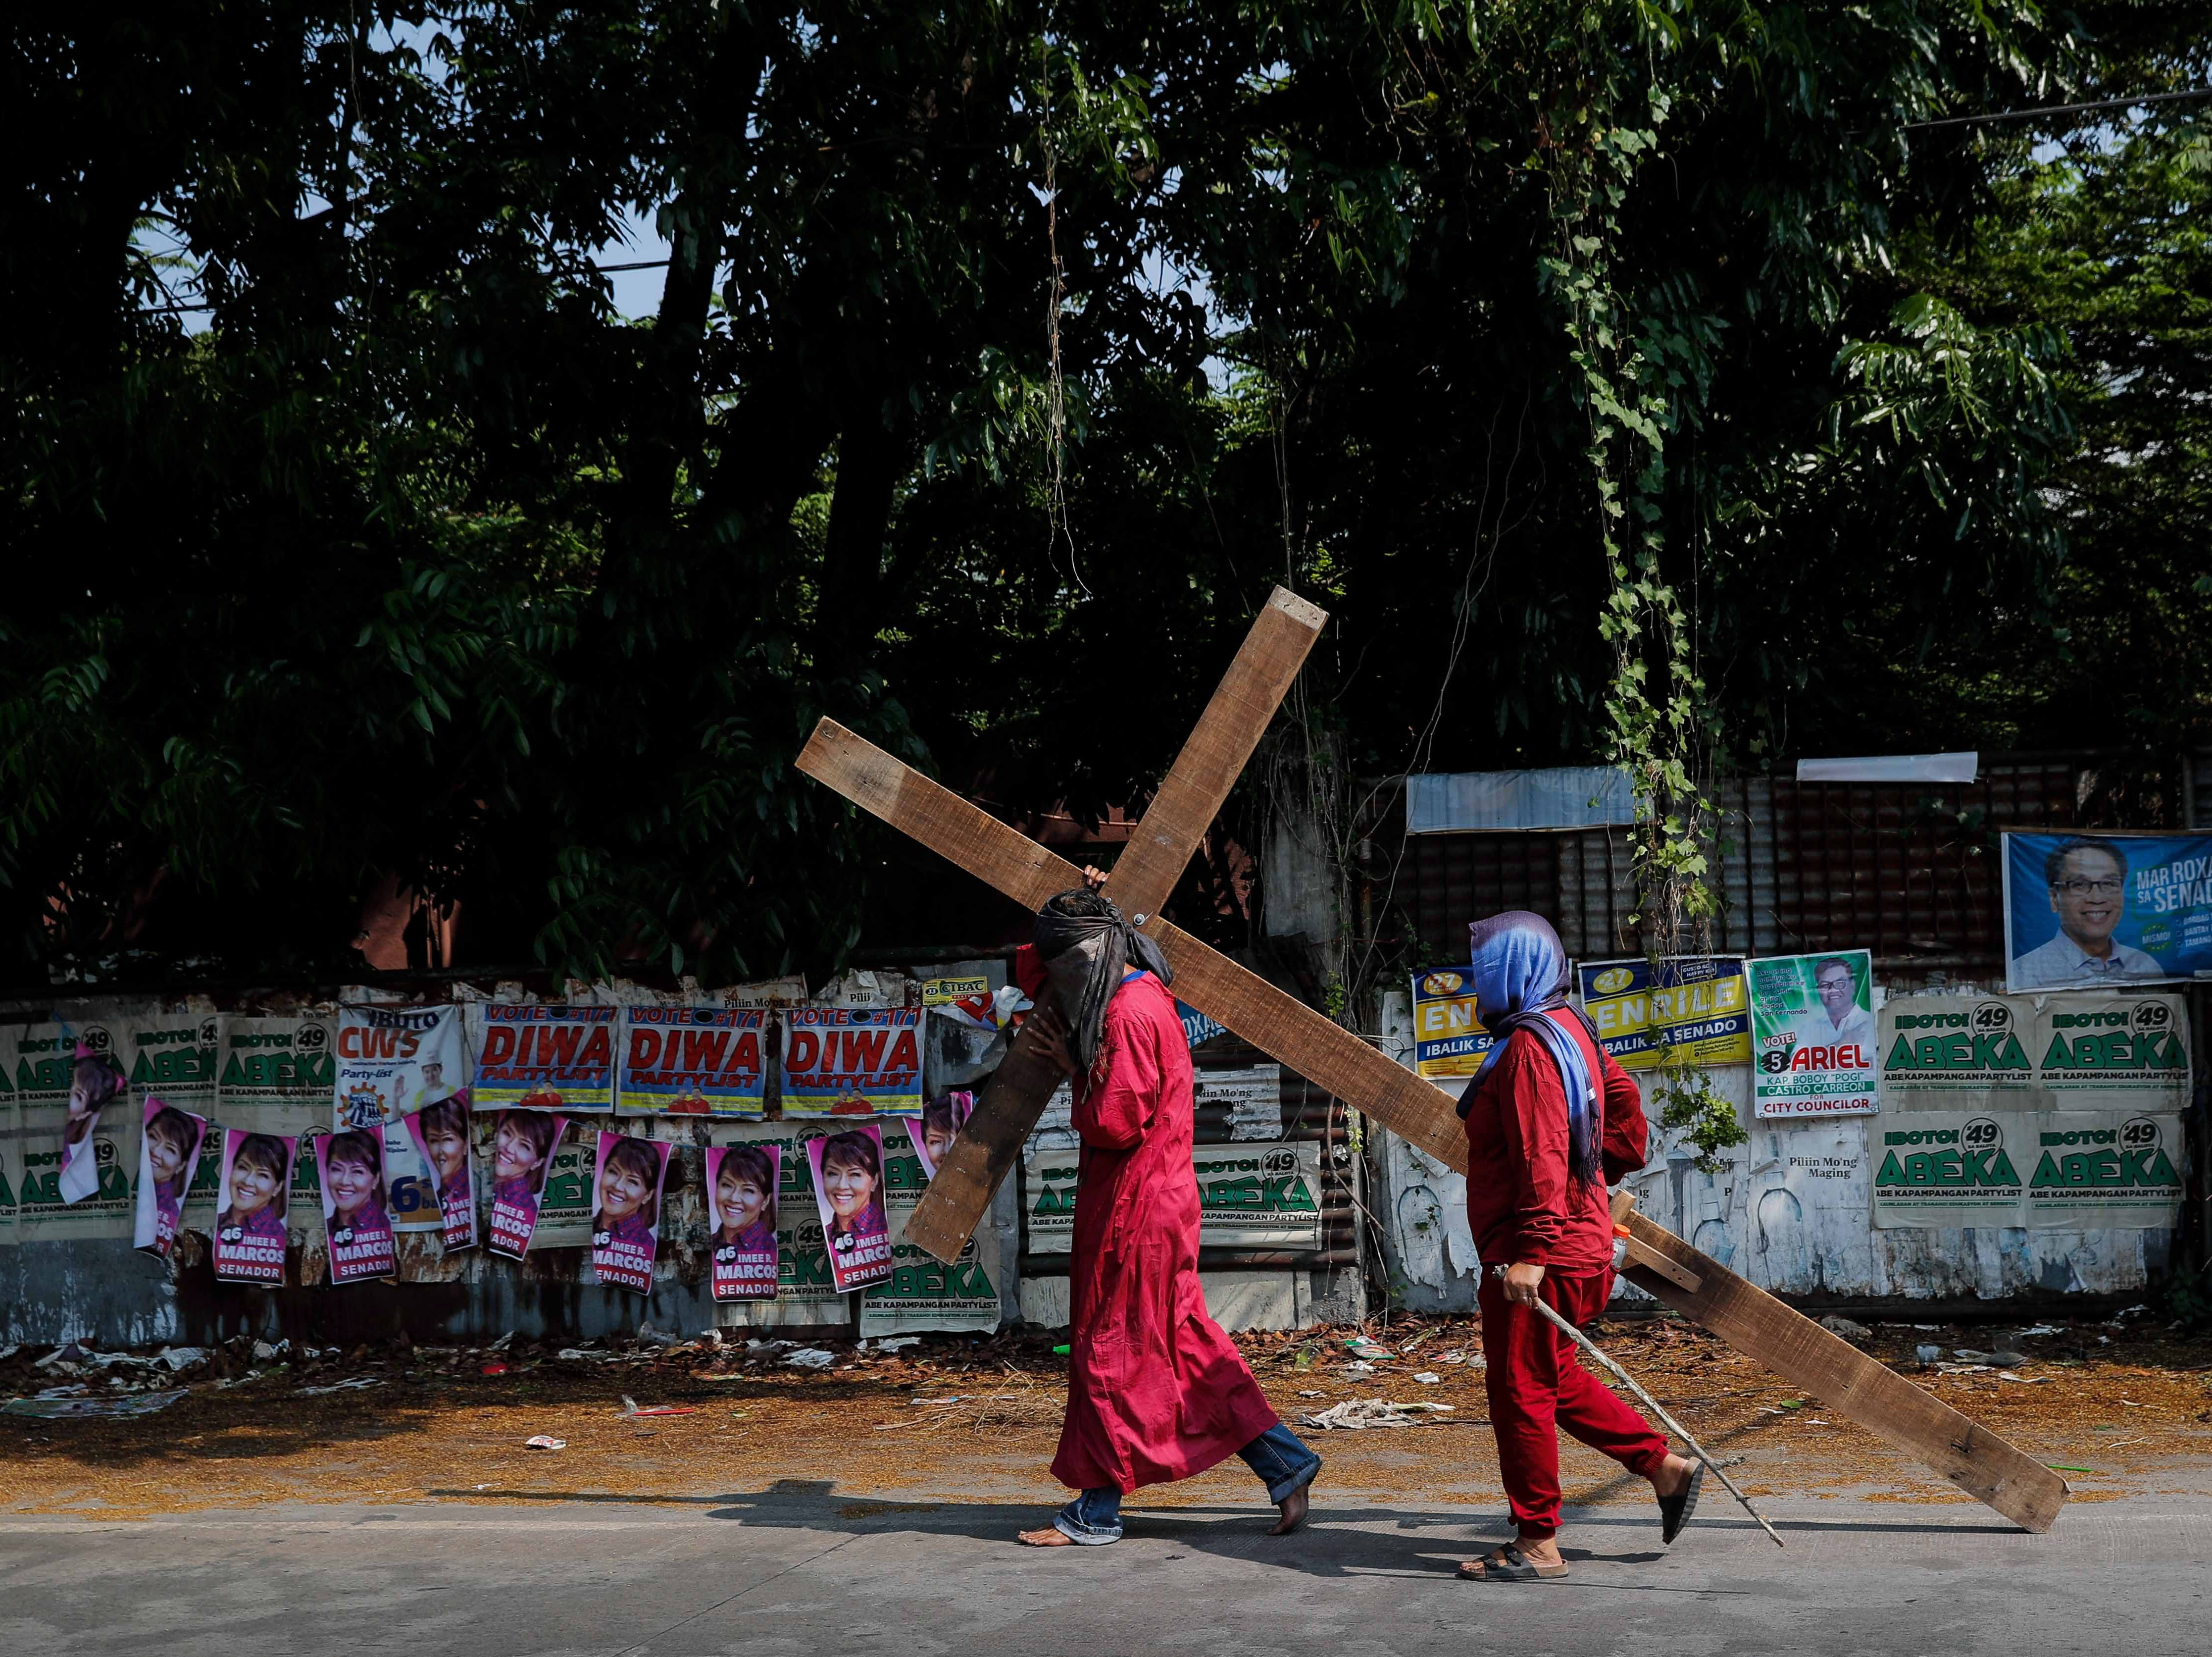 A flagellant carries a wooden cross along campaign posters on Maundy Thursday in San Fernando, Pampanga province, Philippines on April 18, 2019. Many Filipino Catholic penitents mark the Holy Week by submitting to different forms of physical penance in the hopes of being forgiven for their sins.